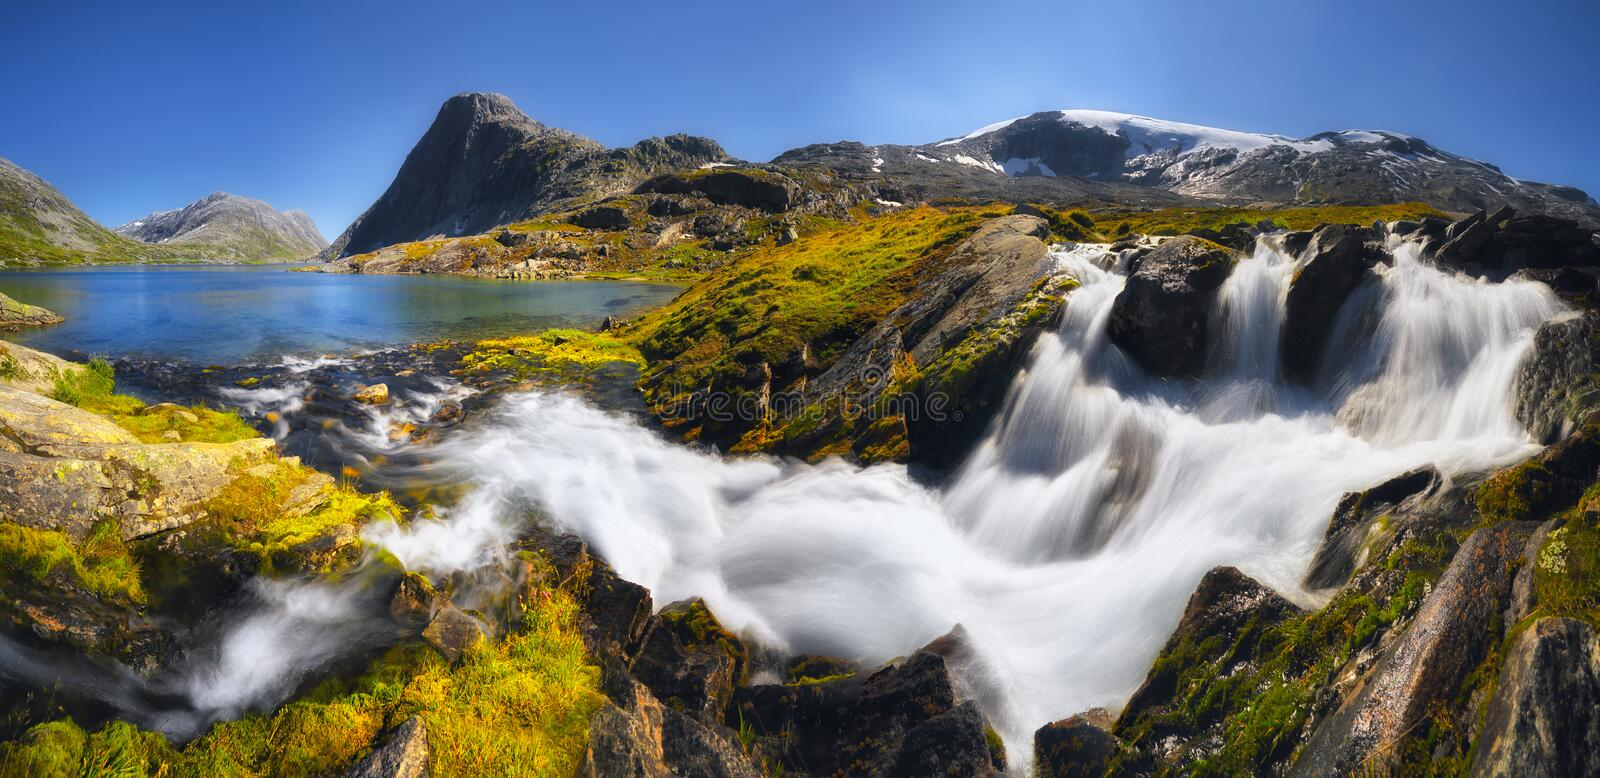 Waterfall in the south of Norway near Geiranger on a sunny day, Romsdal royalty free stock photography